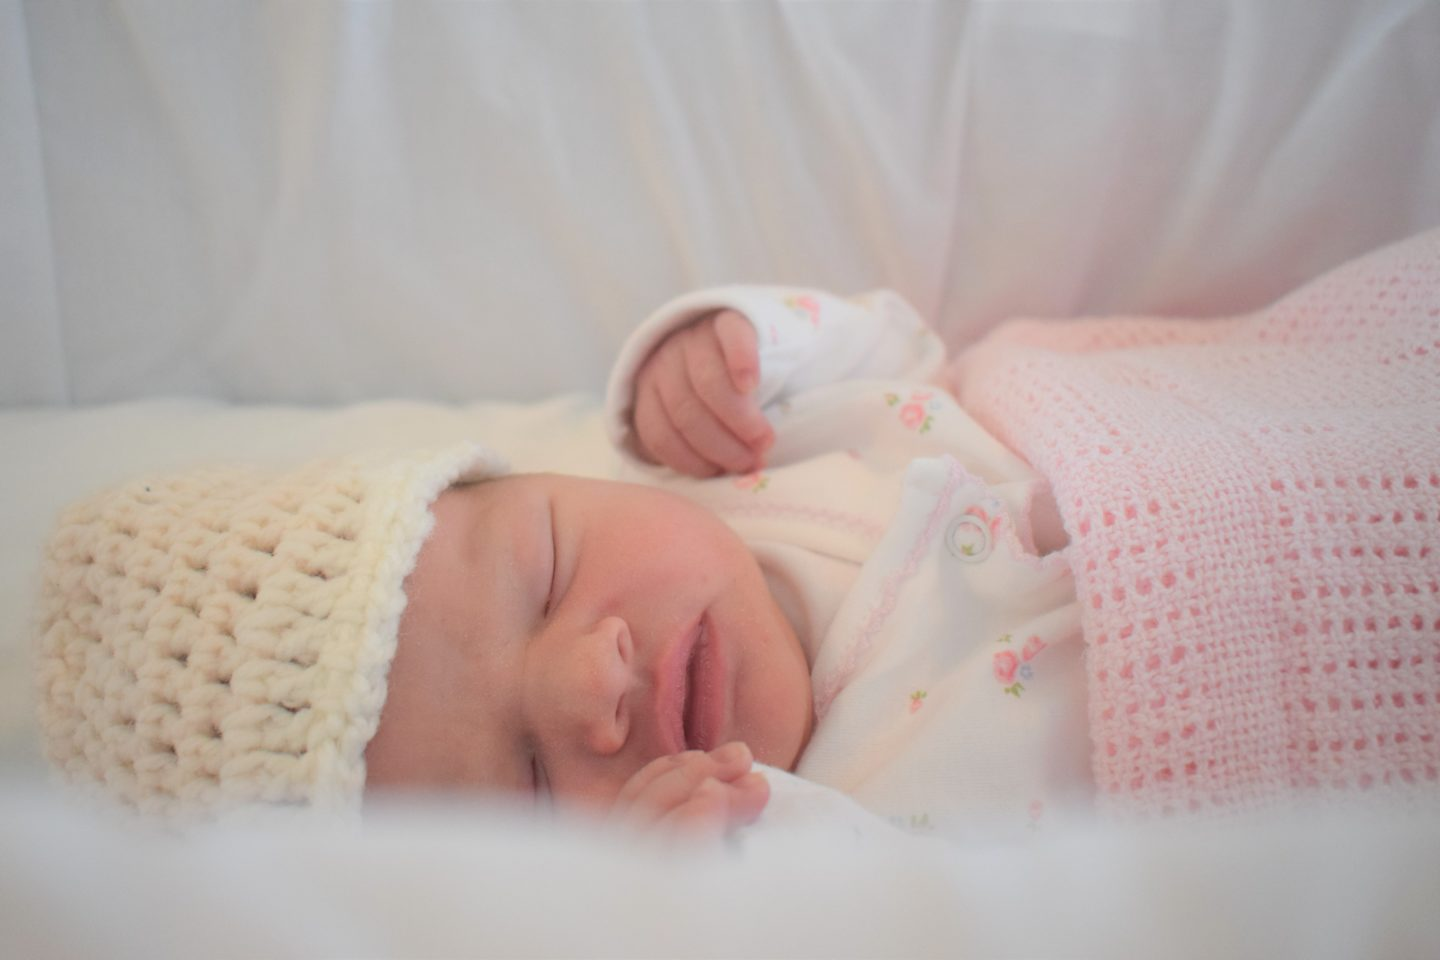 My positive homebirth story – welcome to the world Tilly Mae